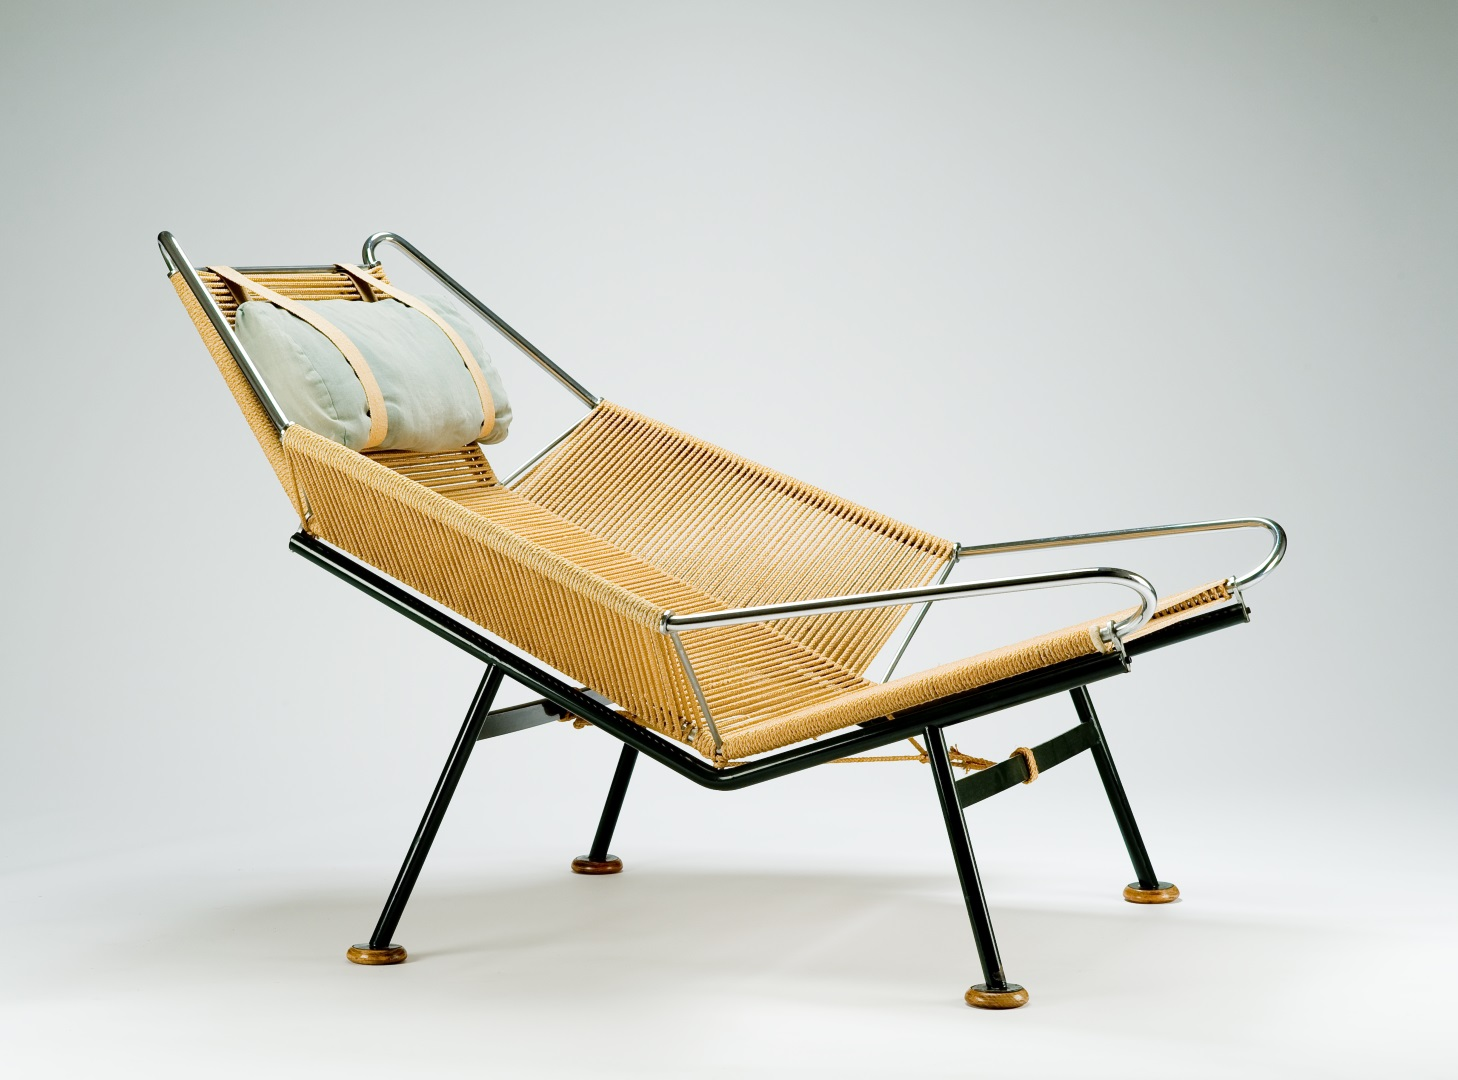 Semi-reclined lounge chair with seat, back, and arms made of rope wrapped around a chromed and black metal frame with four legs.